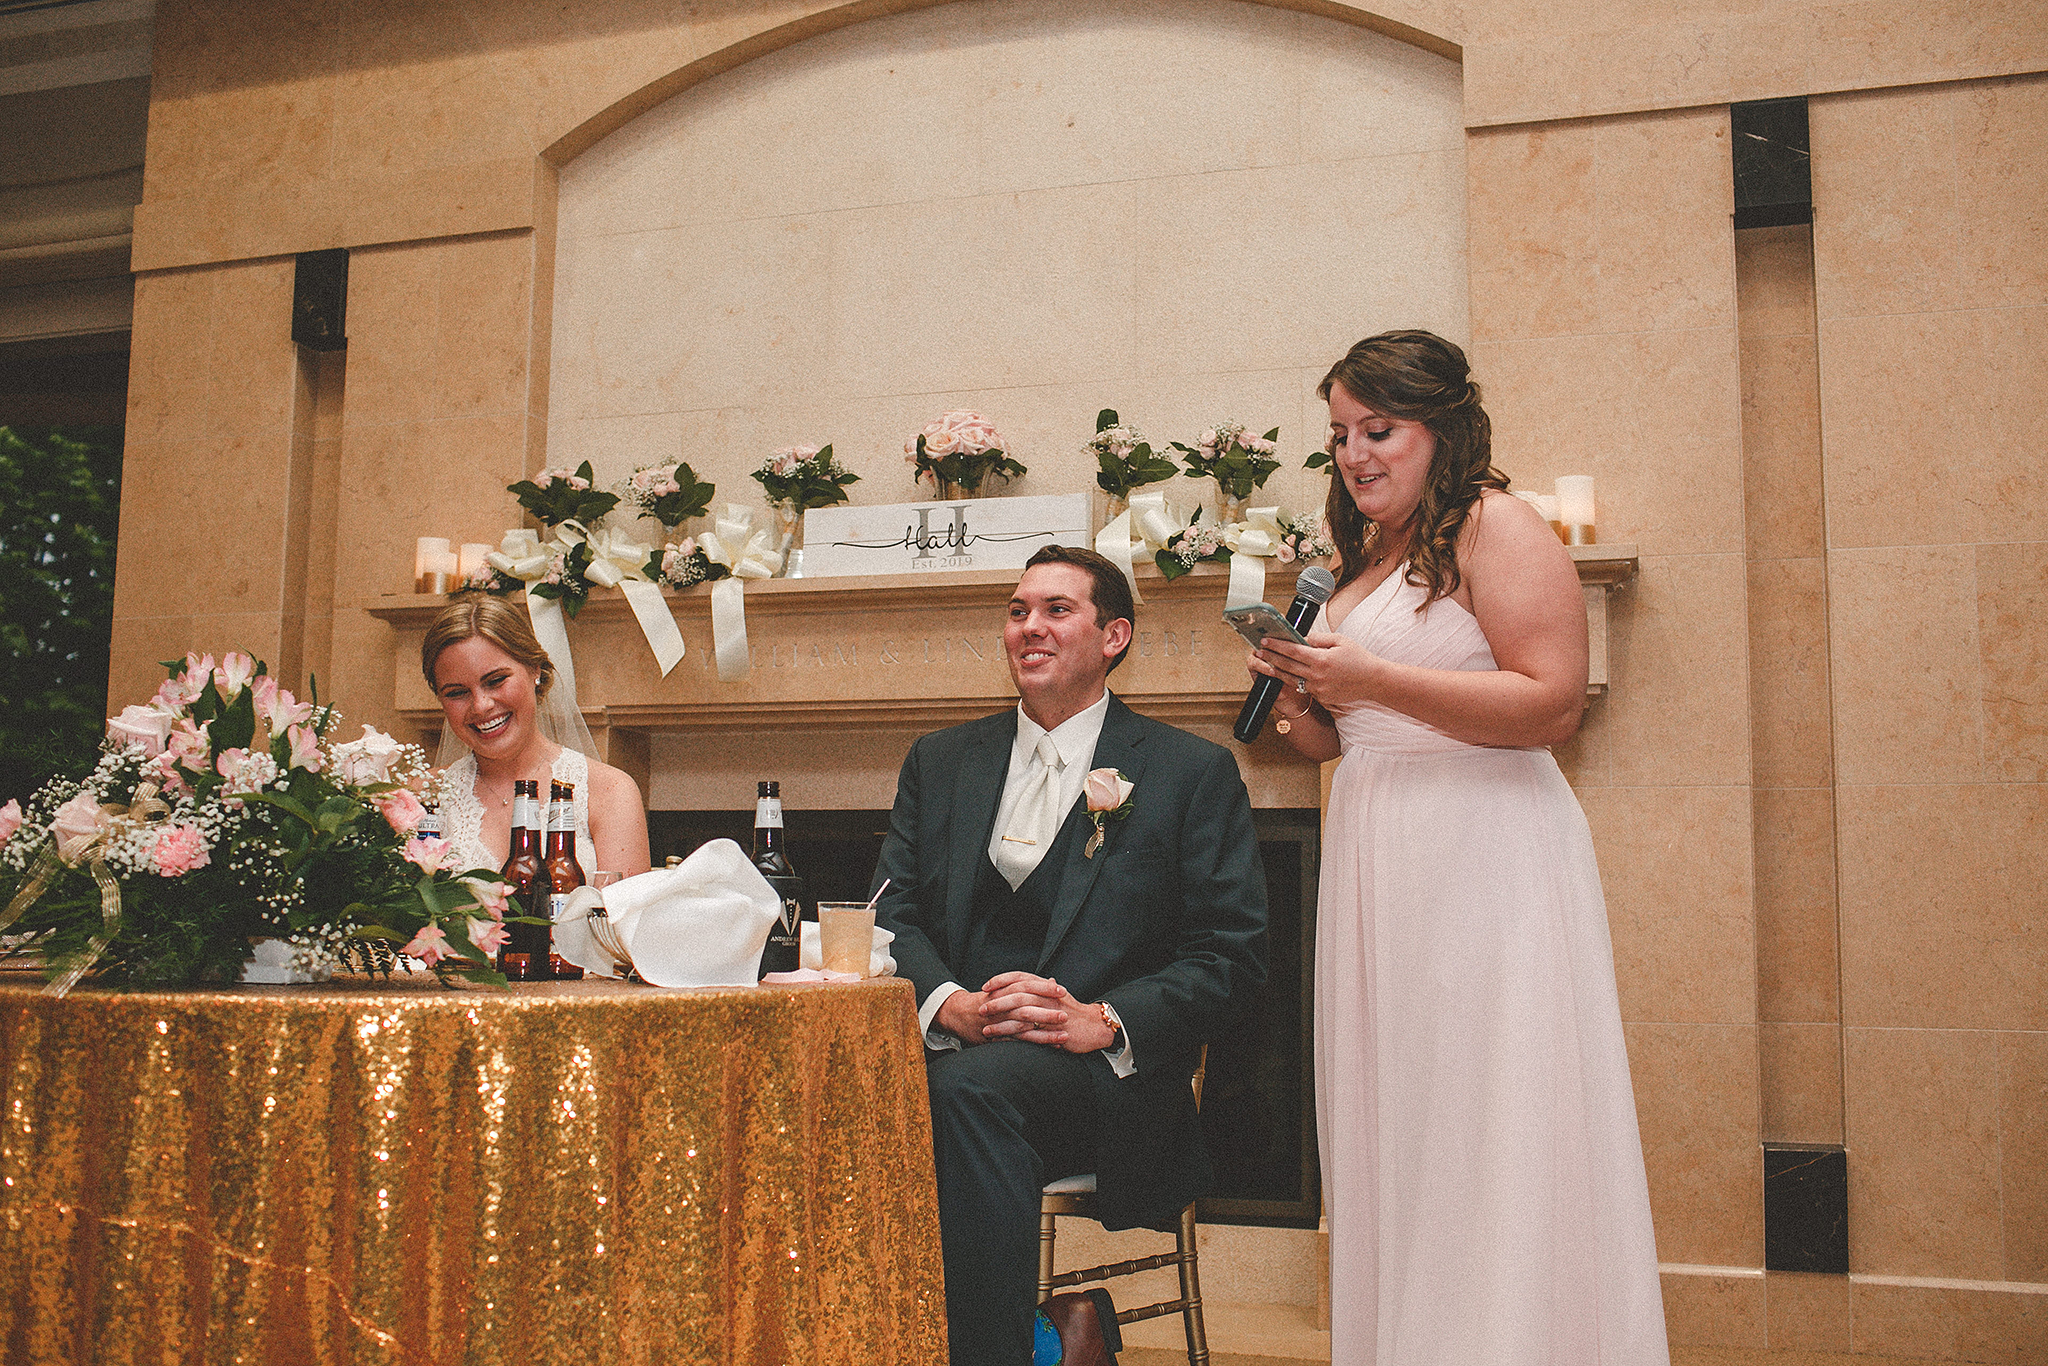 maid of honor toast, bride and groom laughing | dekalb, il wedding photographer